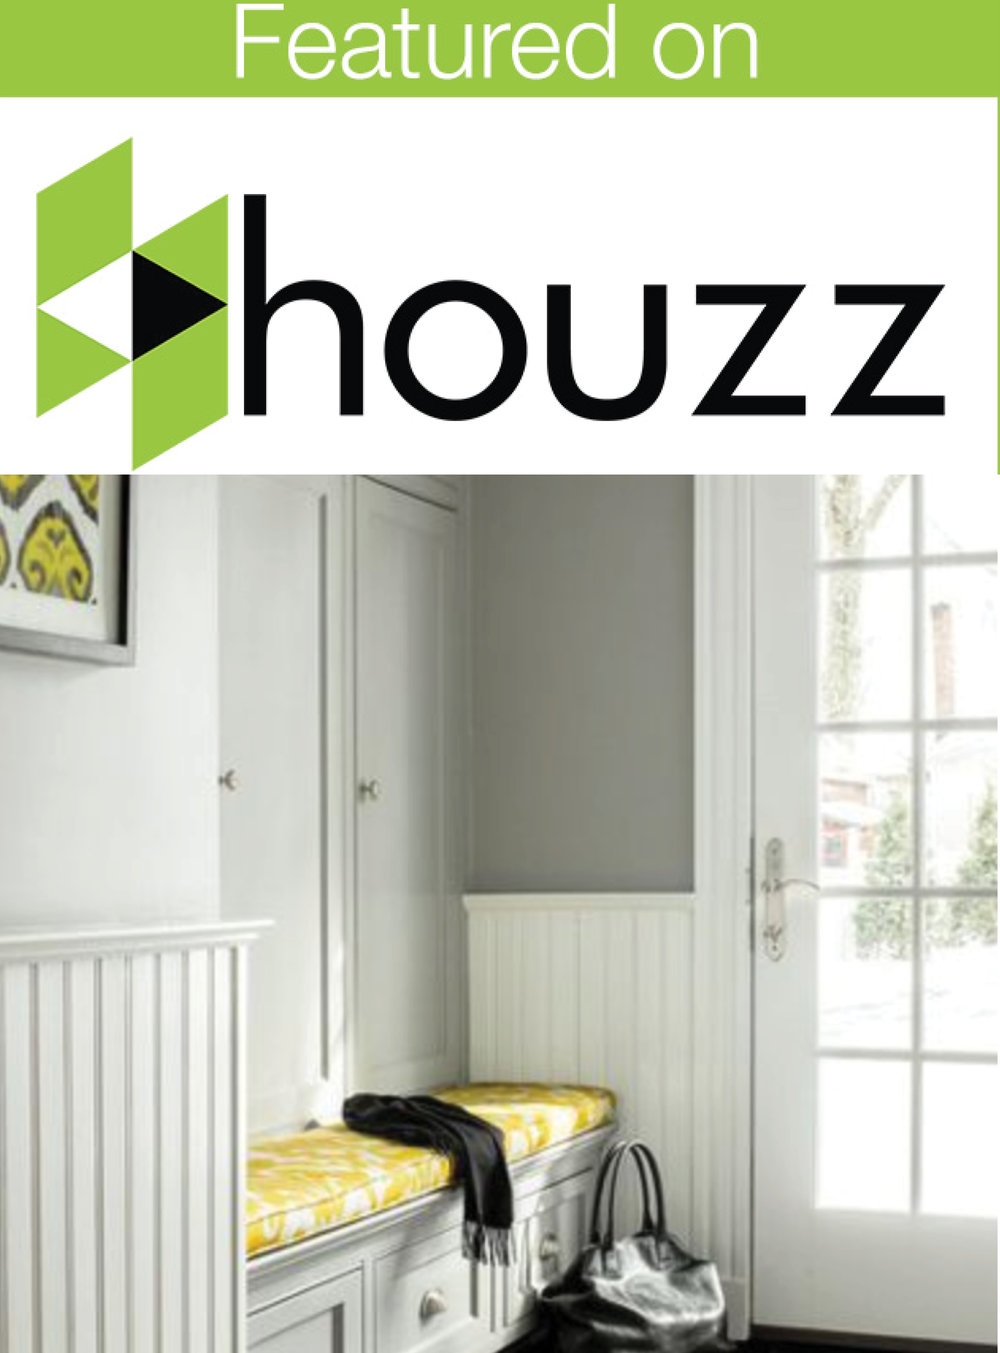 Smart Storage. Houzz 2015